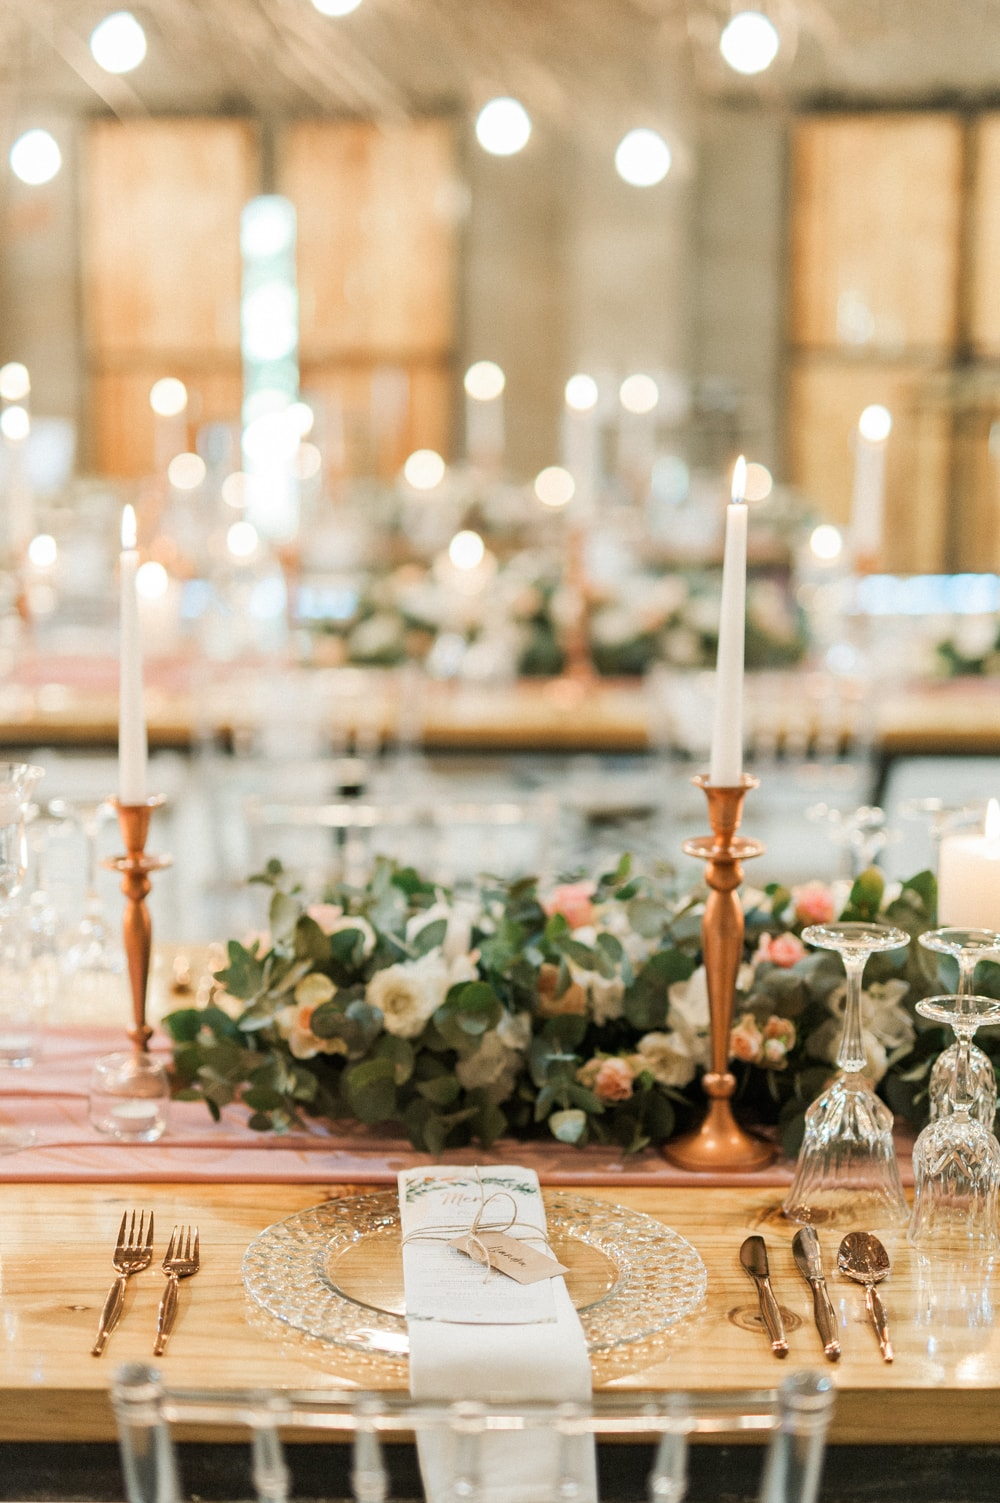 Blush and Rose Gold Table Decor | Image: Bright Girl Photography